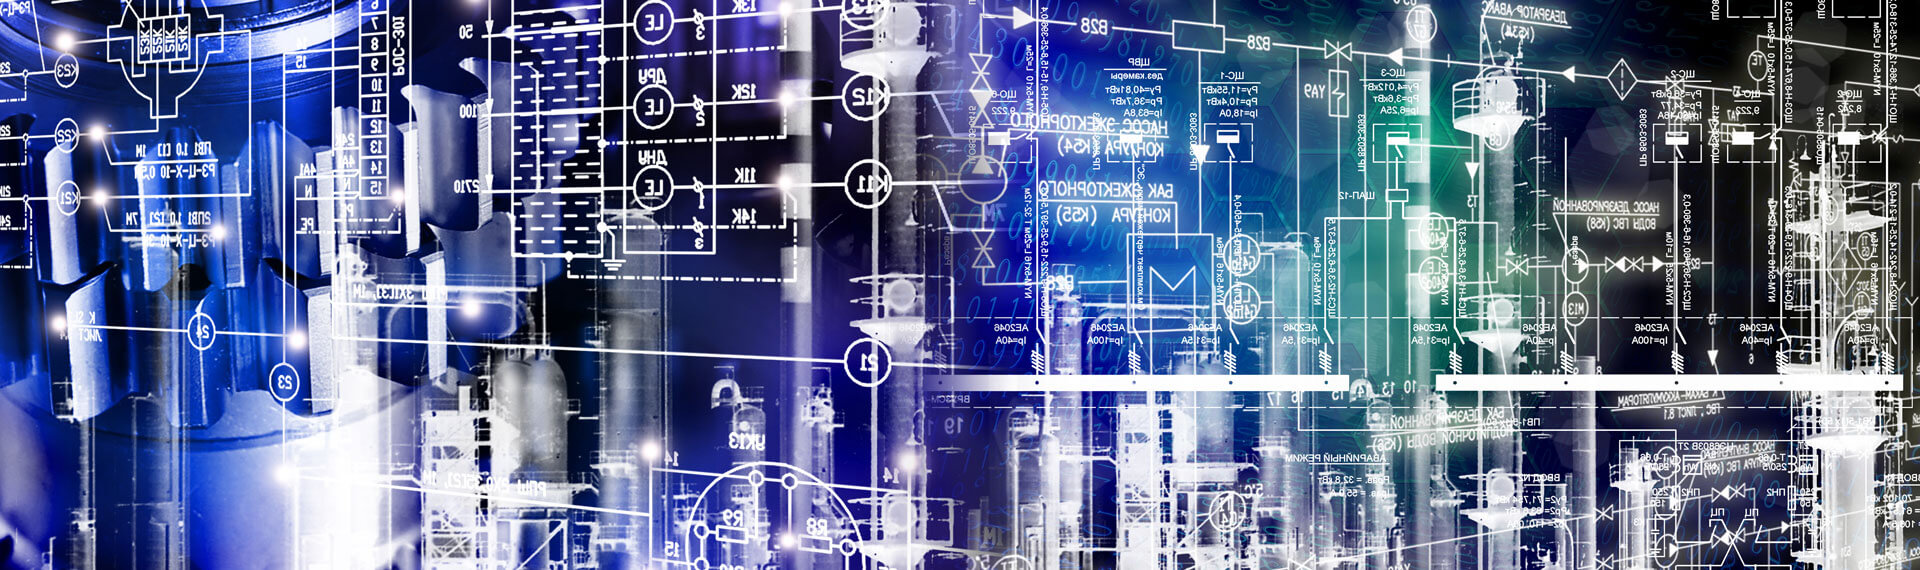 Construction engineering industrial background